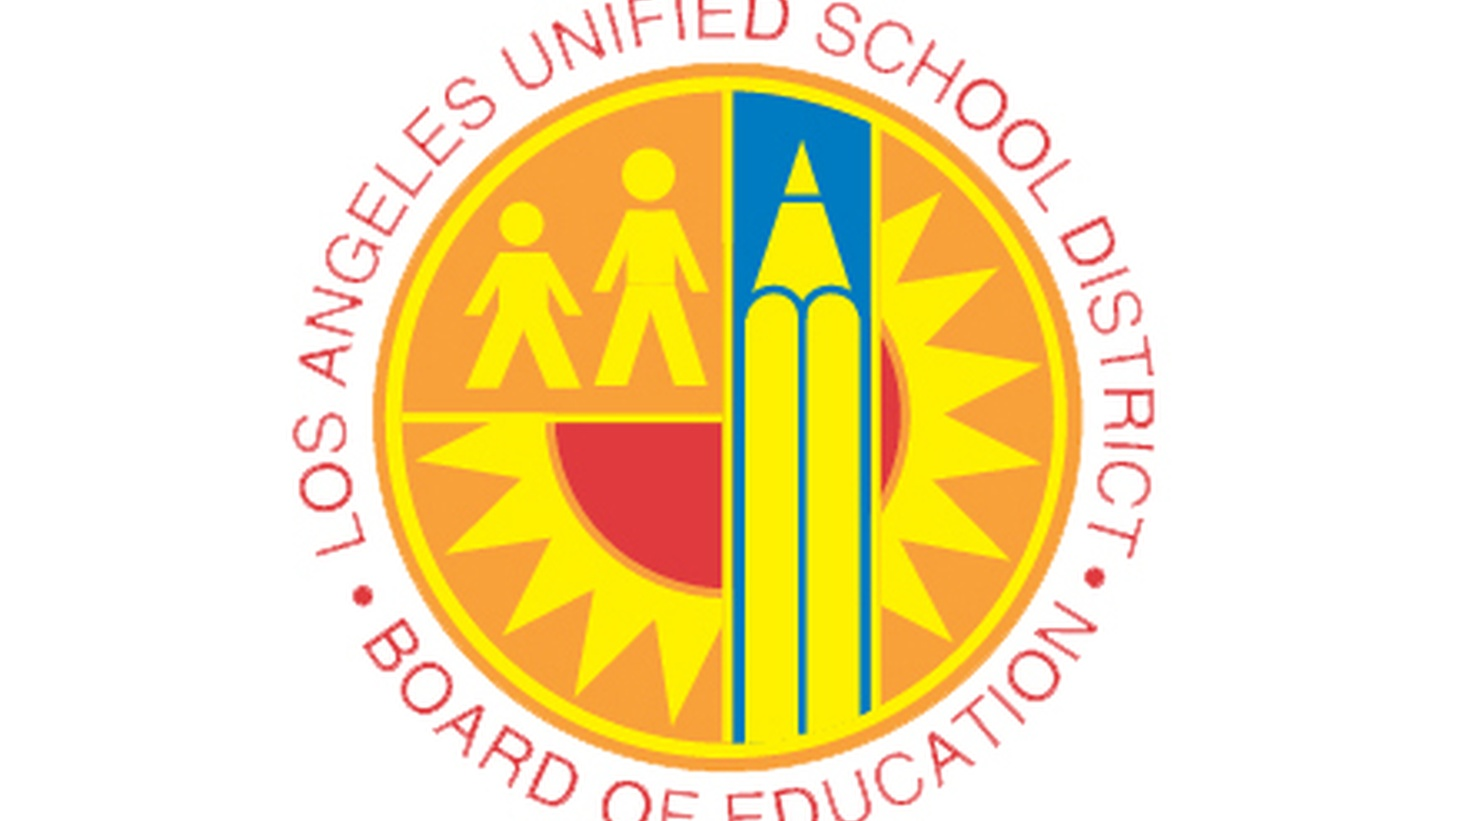 "The non-profit group ""Great Public Schools Now"" released a 16-page draft plan this week outlining a mission to support public schools in many forms. They also announced the first recipients of grants aimed towards specific schools and organizations. What's the reaction from Los Angeles Unified School District?"